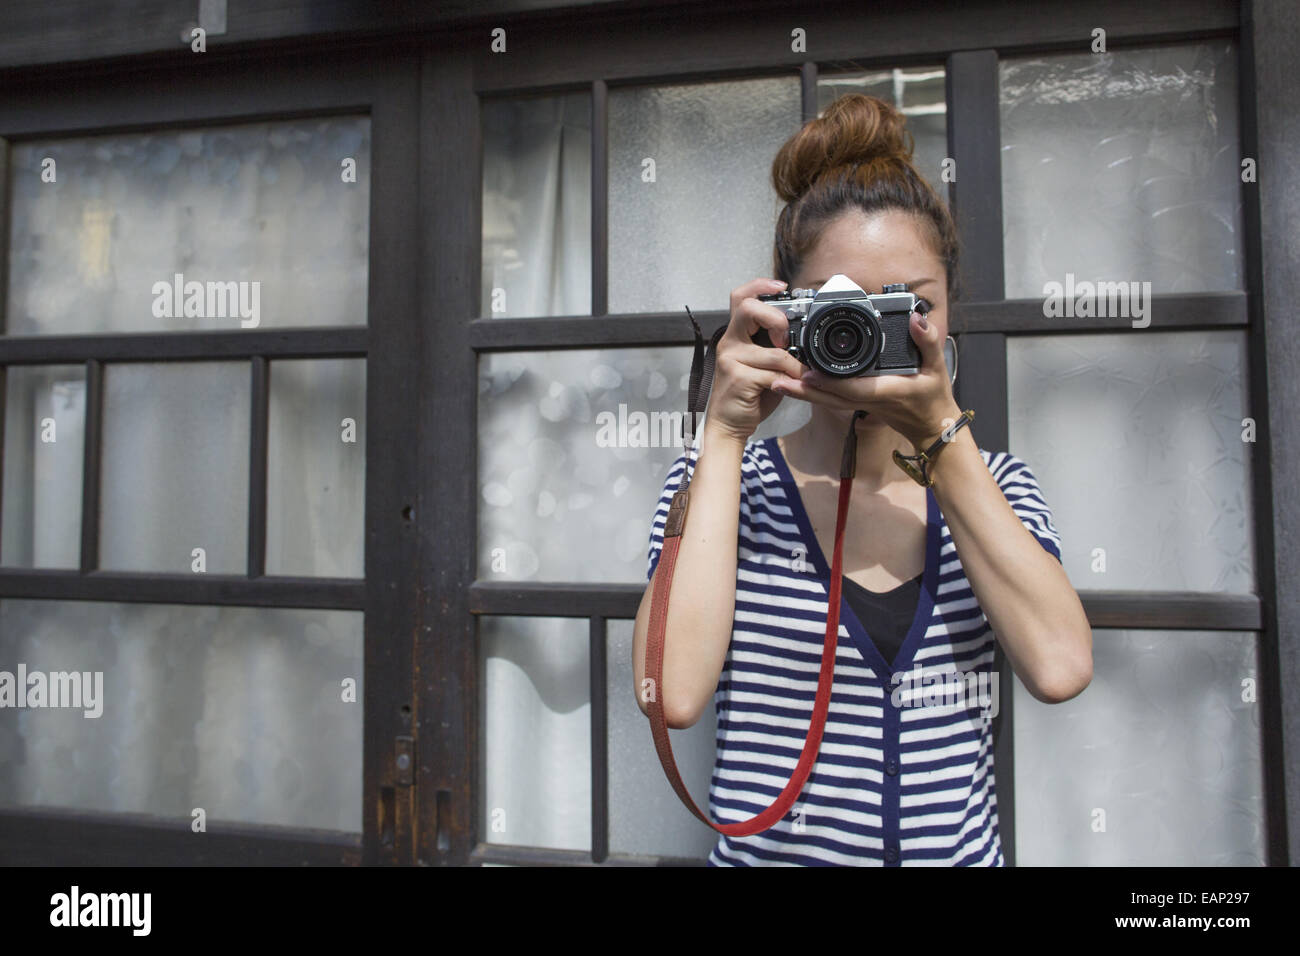 Woman standing outdoors, looking through a camera. - Stock Image